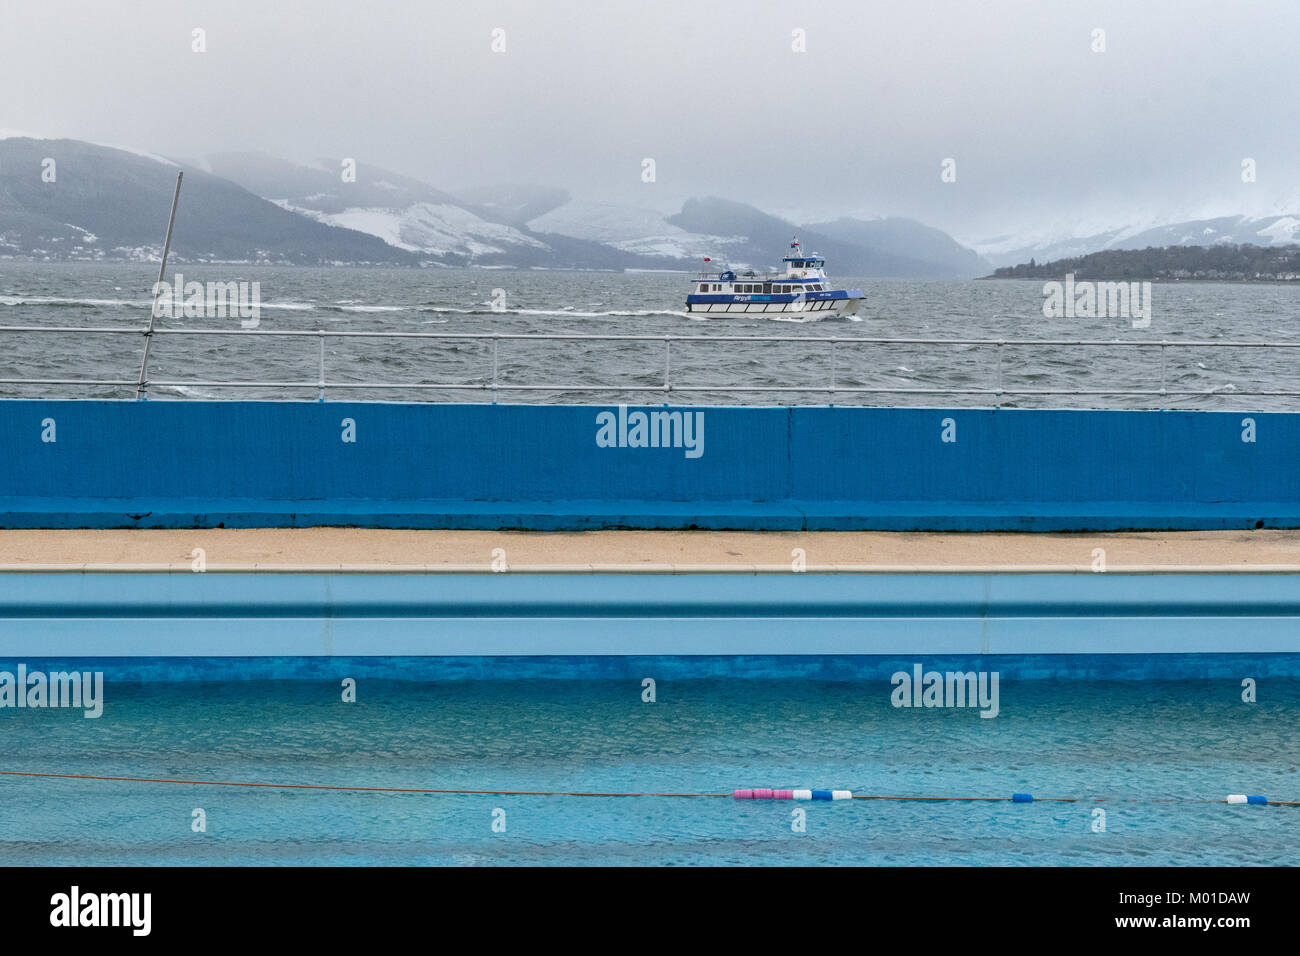 Gourock outdoor salt water heated swimming pool out of season, with ferry sailing across the Firth of Clyde behind, - Stock Image